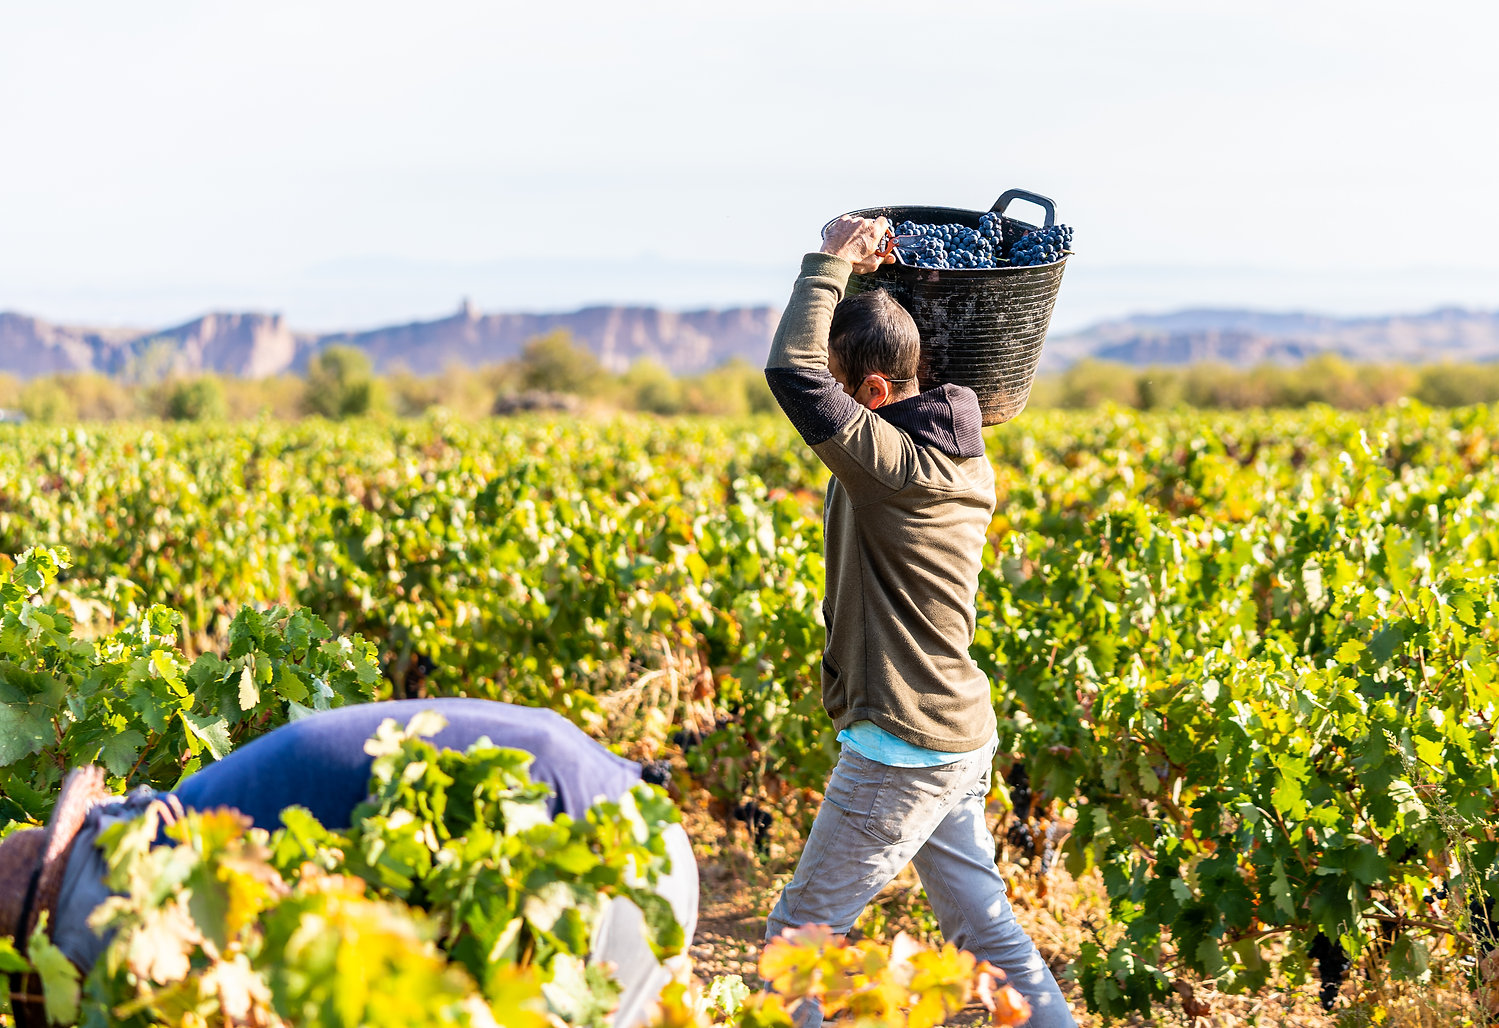 Vines and harvesters with baskets carryi